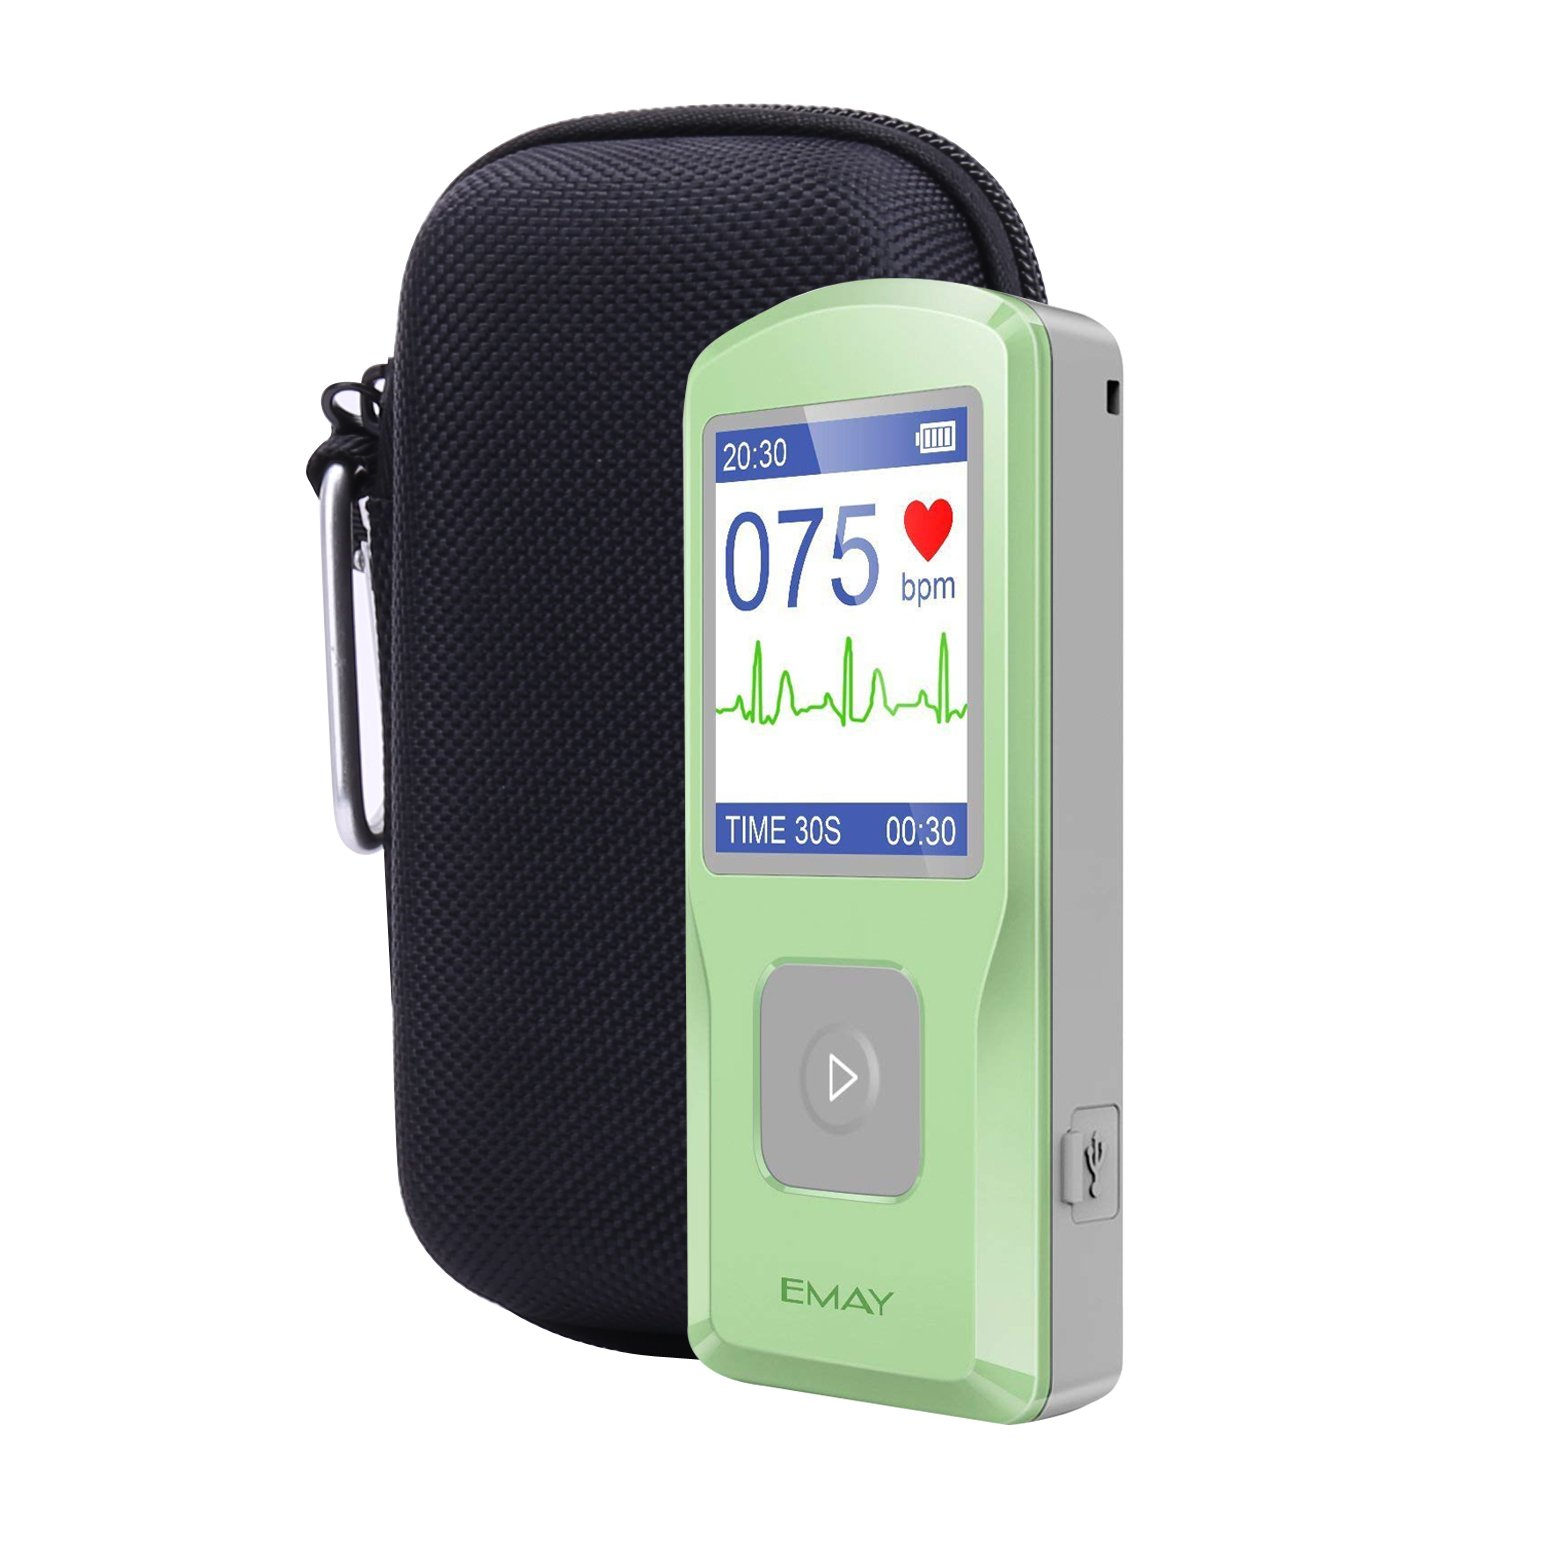 Aenllosi Hard Case for Emay Handheld ECG/EKG Monitor with Pill Organizer by by Aenllosi (Image #1)